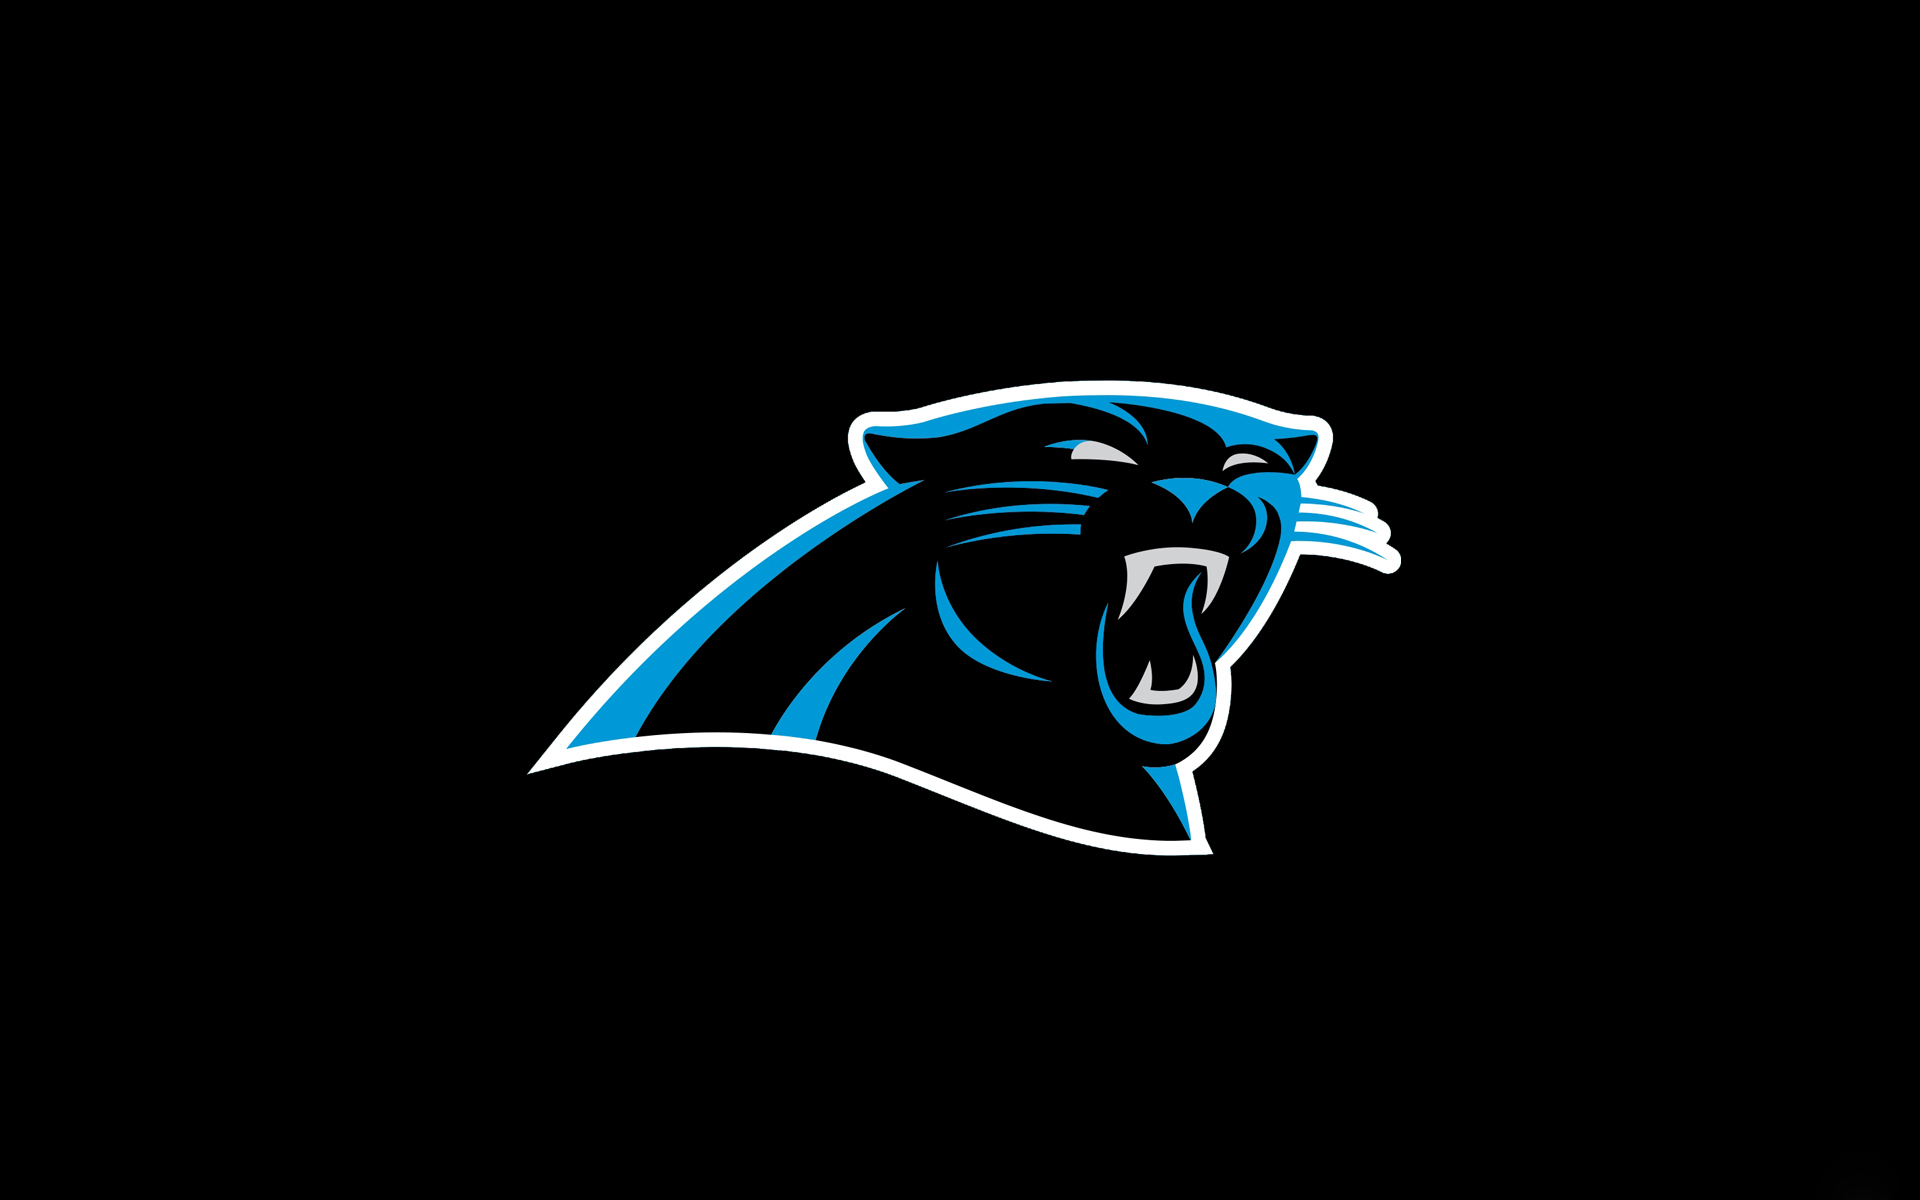 carolina panthers logo wallpaper  Carolina Panthers Logo Wallpaper HD | wallpaper.wiki